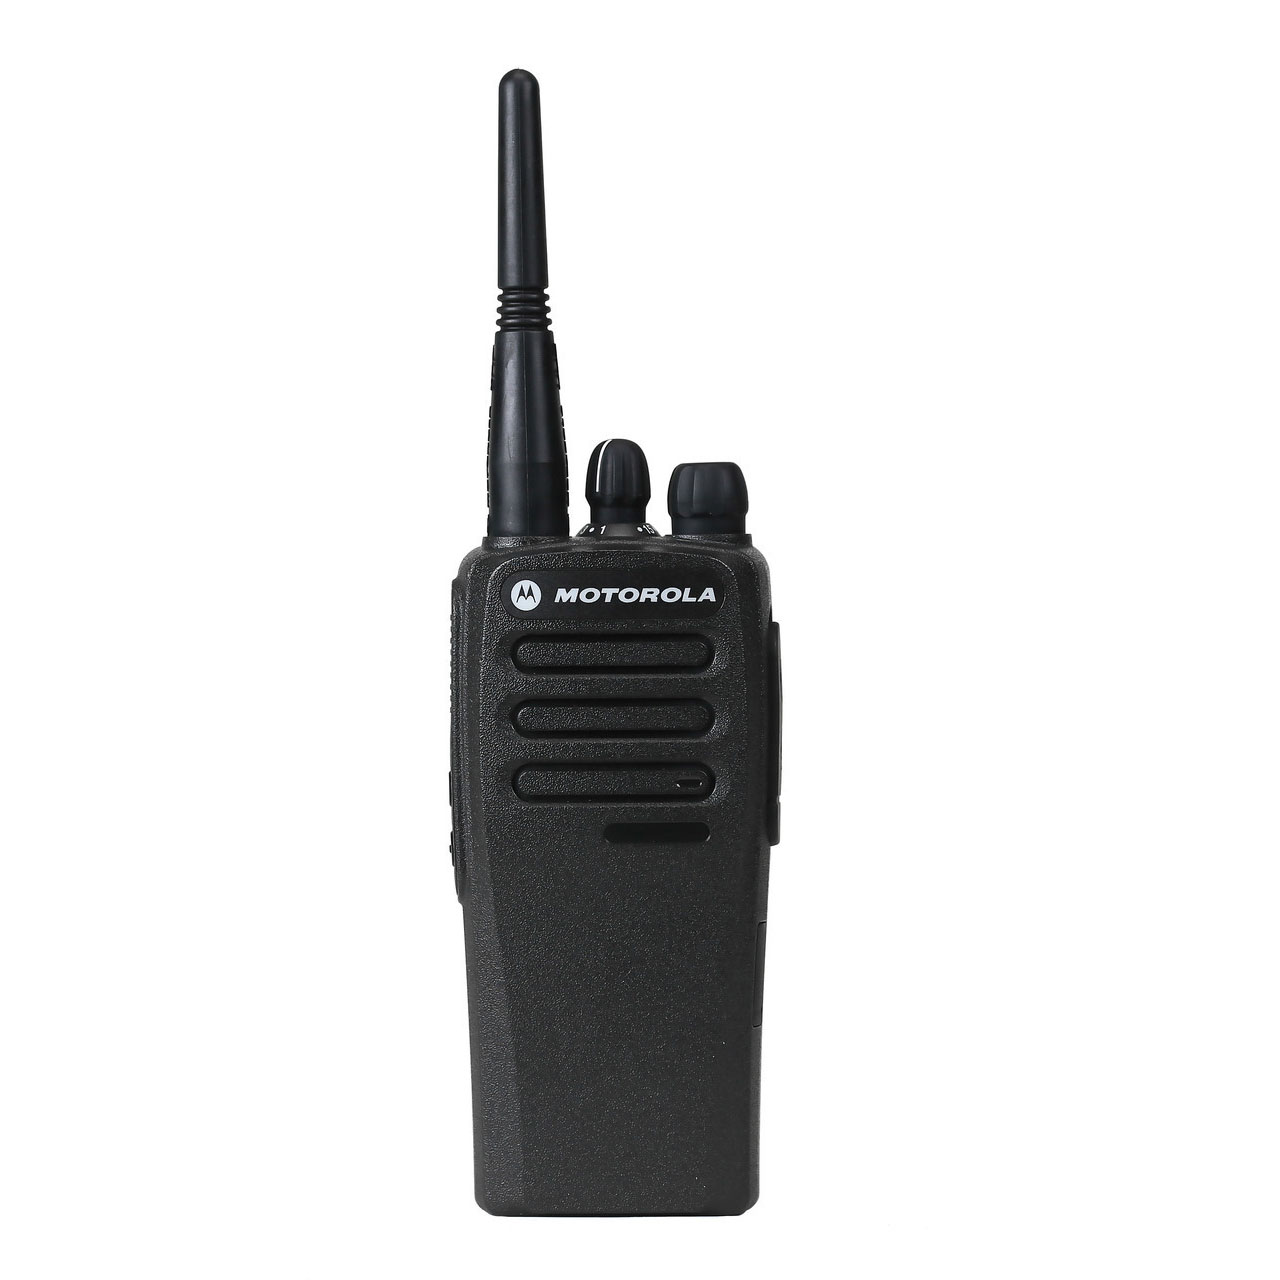 MOTOTRBO  CP200d Portable Two-Way Radio